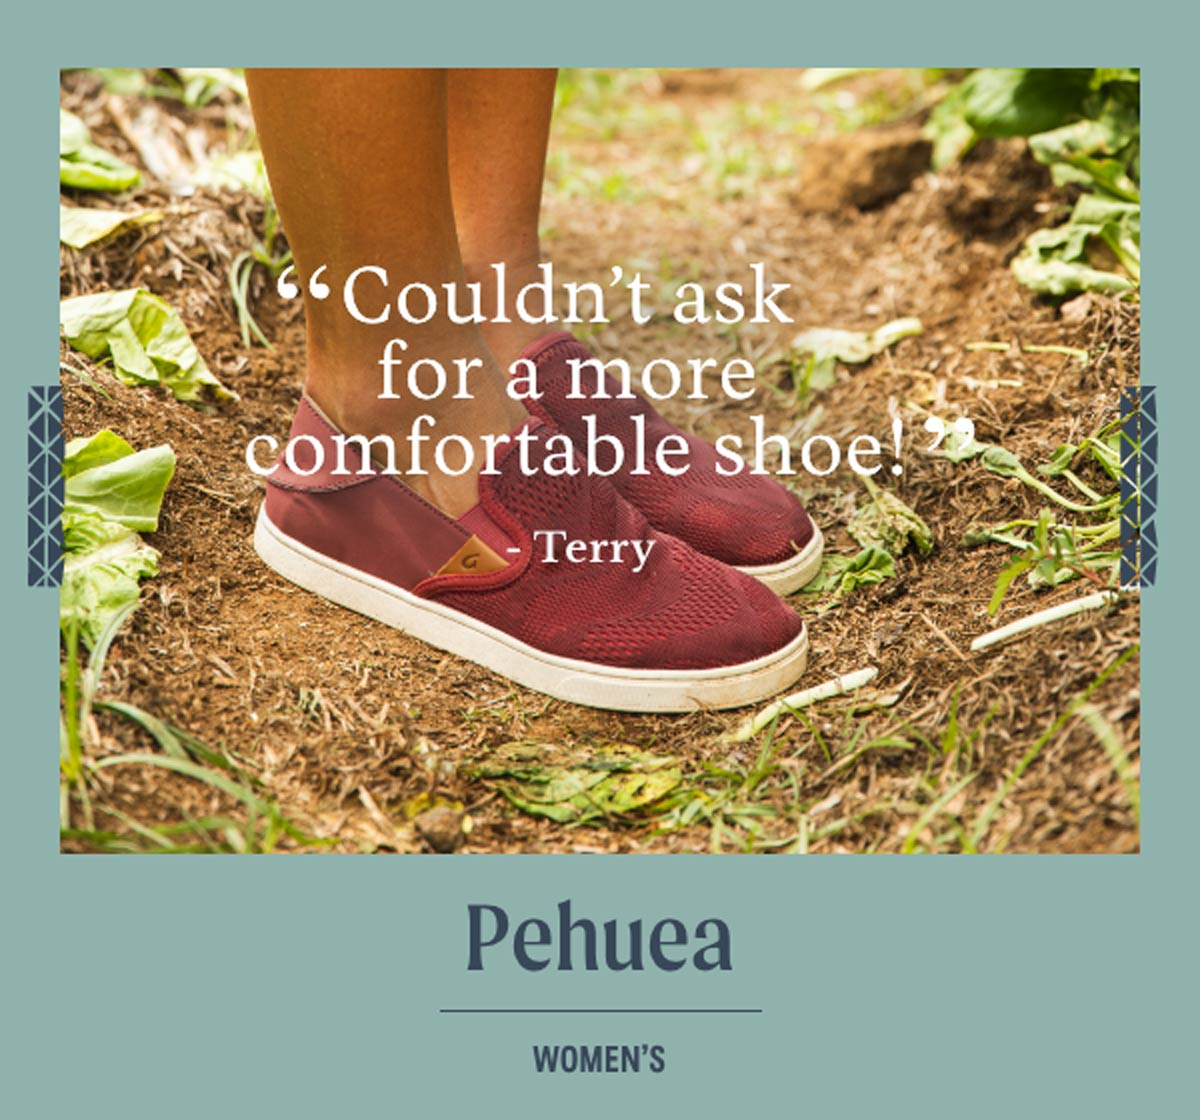 ''Couldn't ask for a more comfortable shoe!'' - Terry. Women's Pehuea.